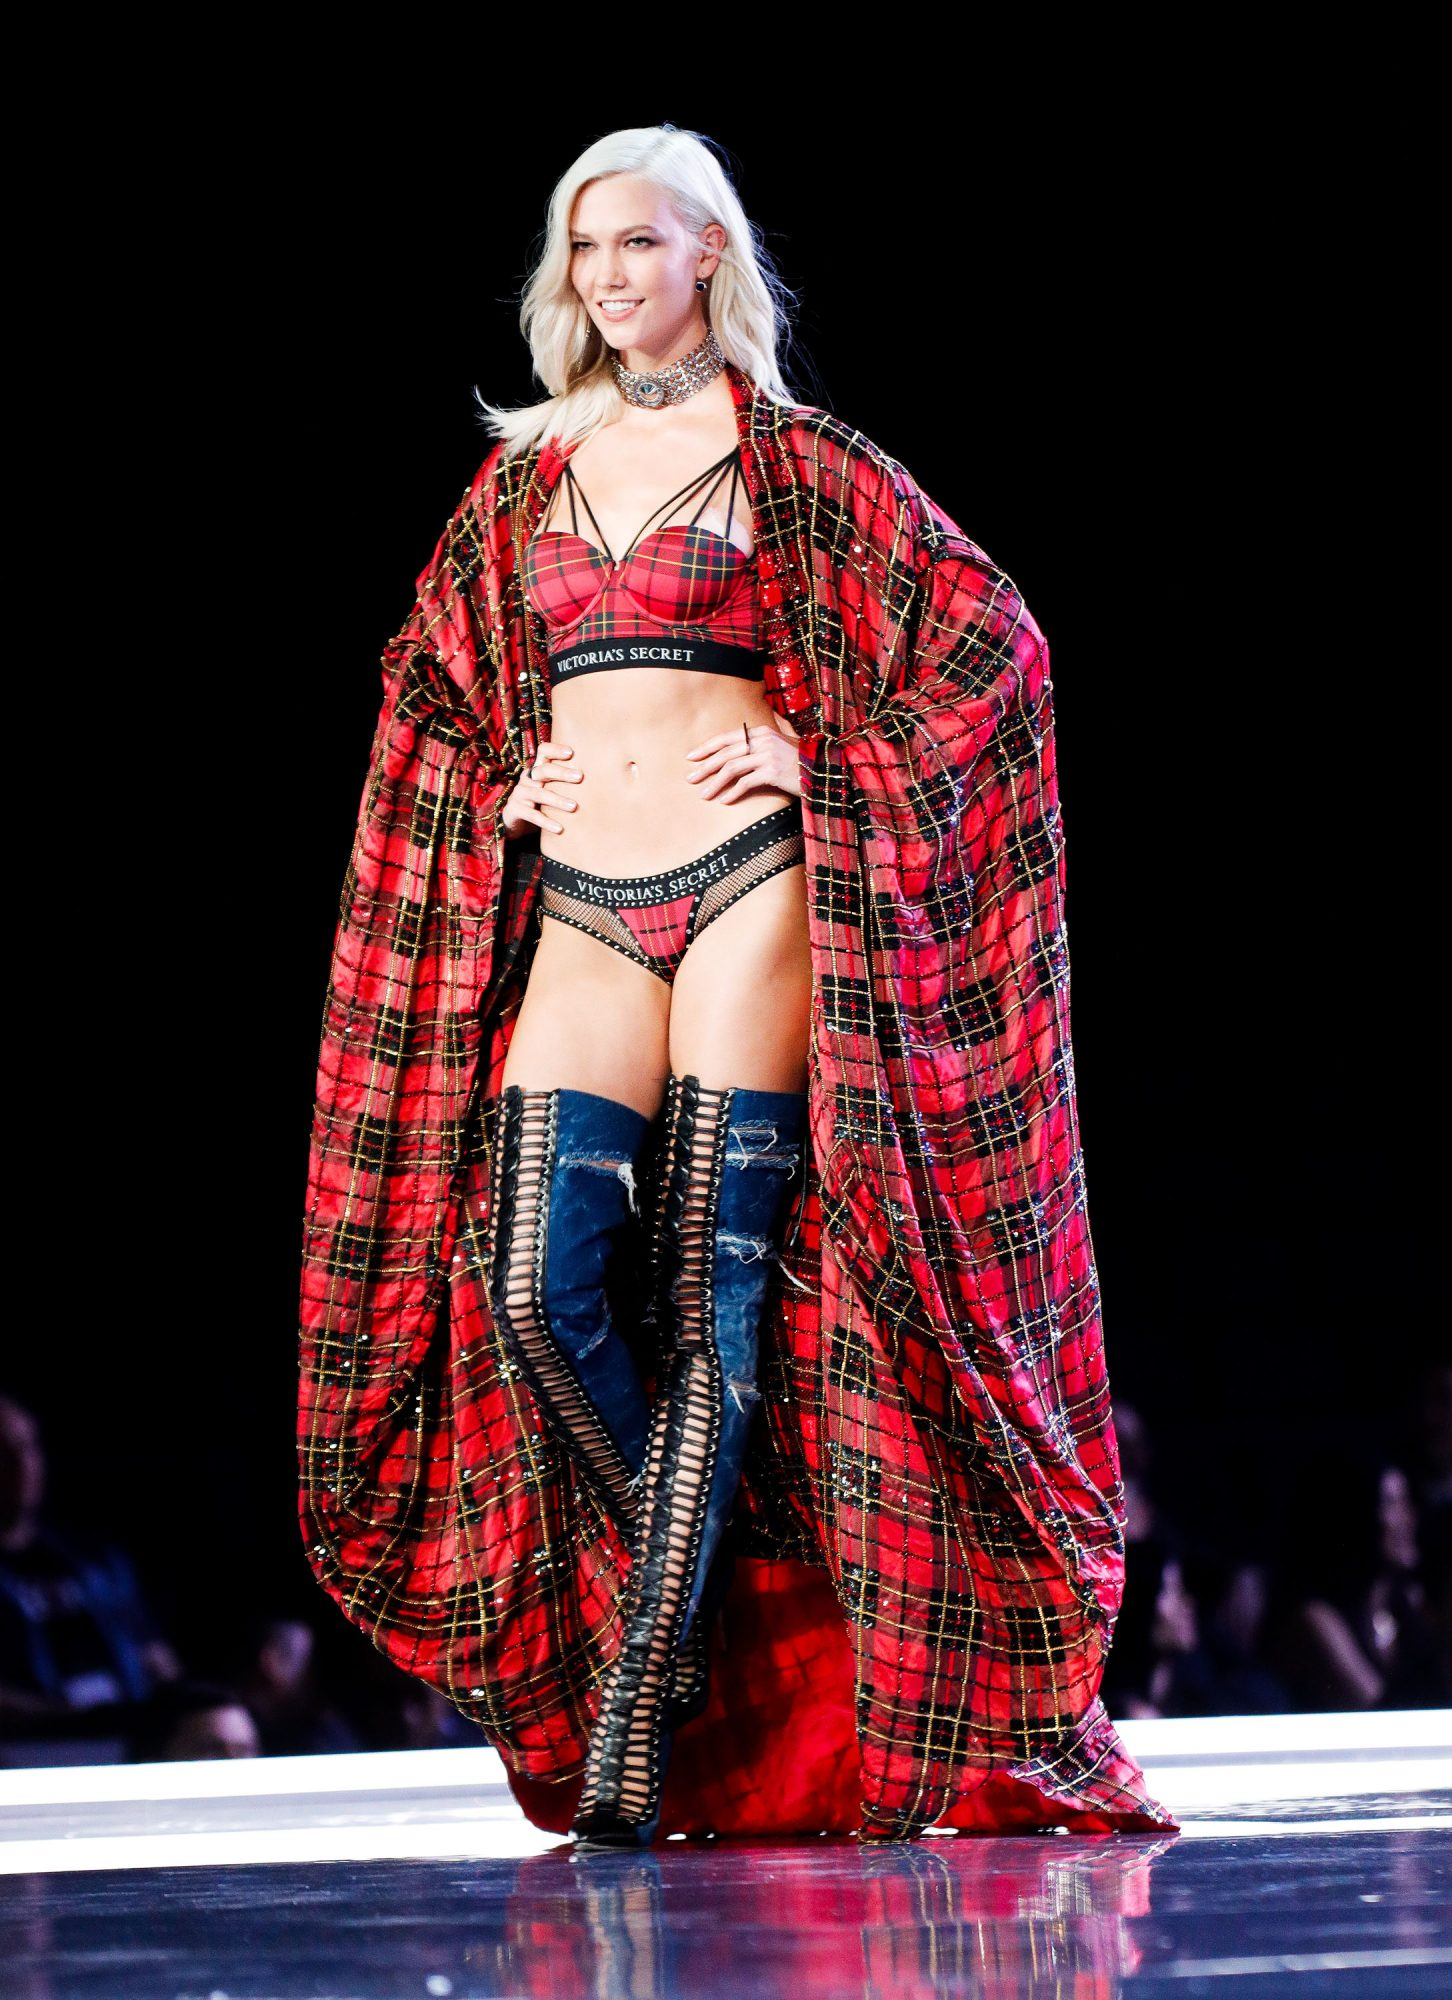 Why Karlie Kloss is Cutting Ties with Victoria's Secret